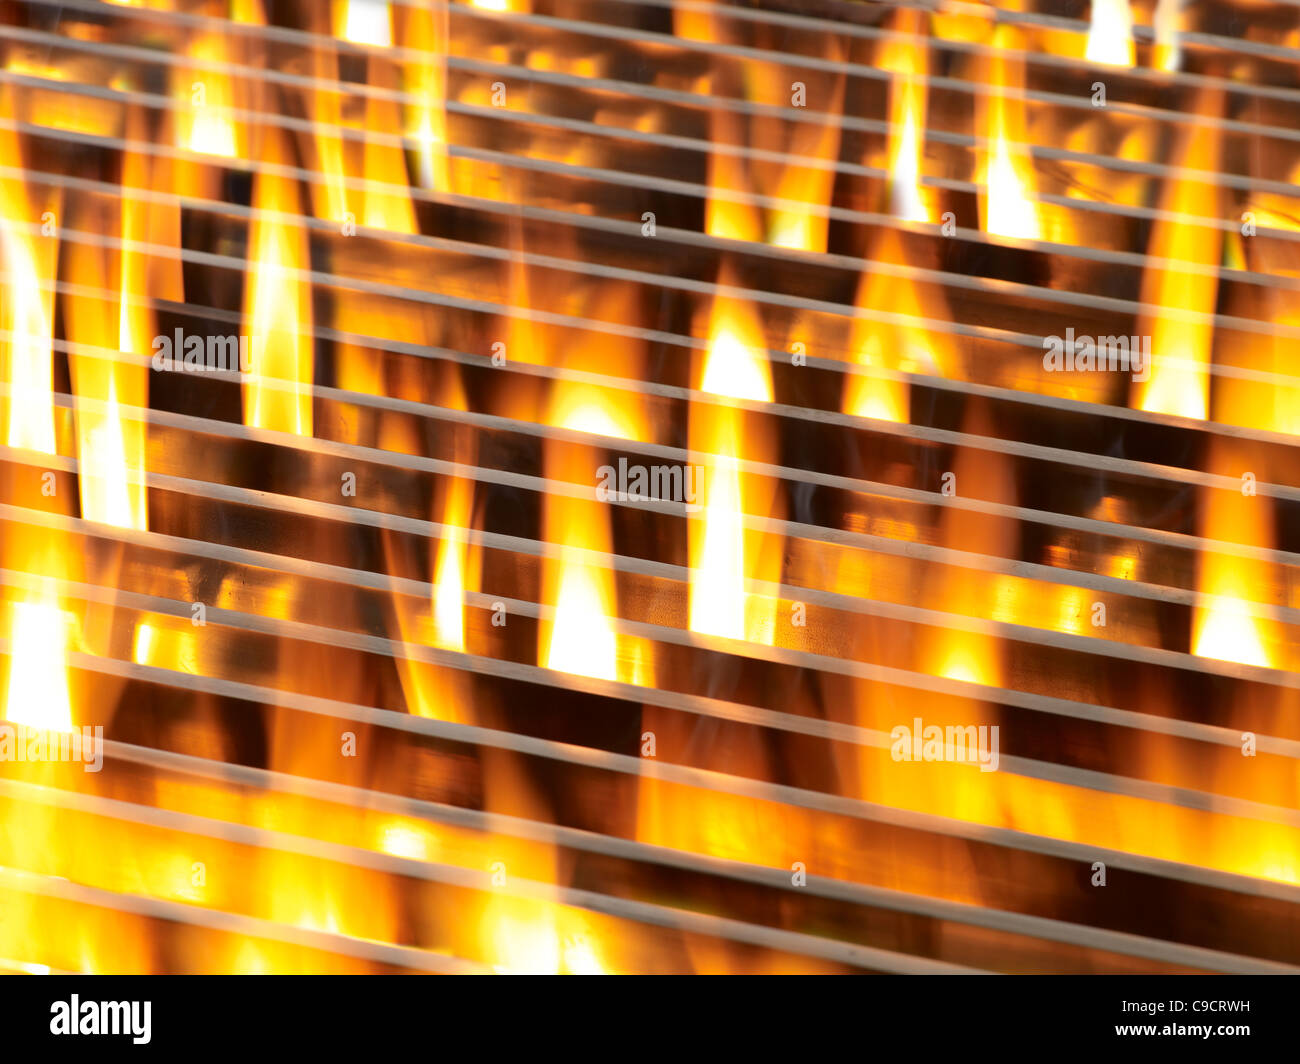 Grill with flame - Stock Image